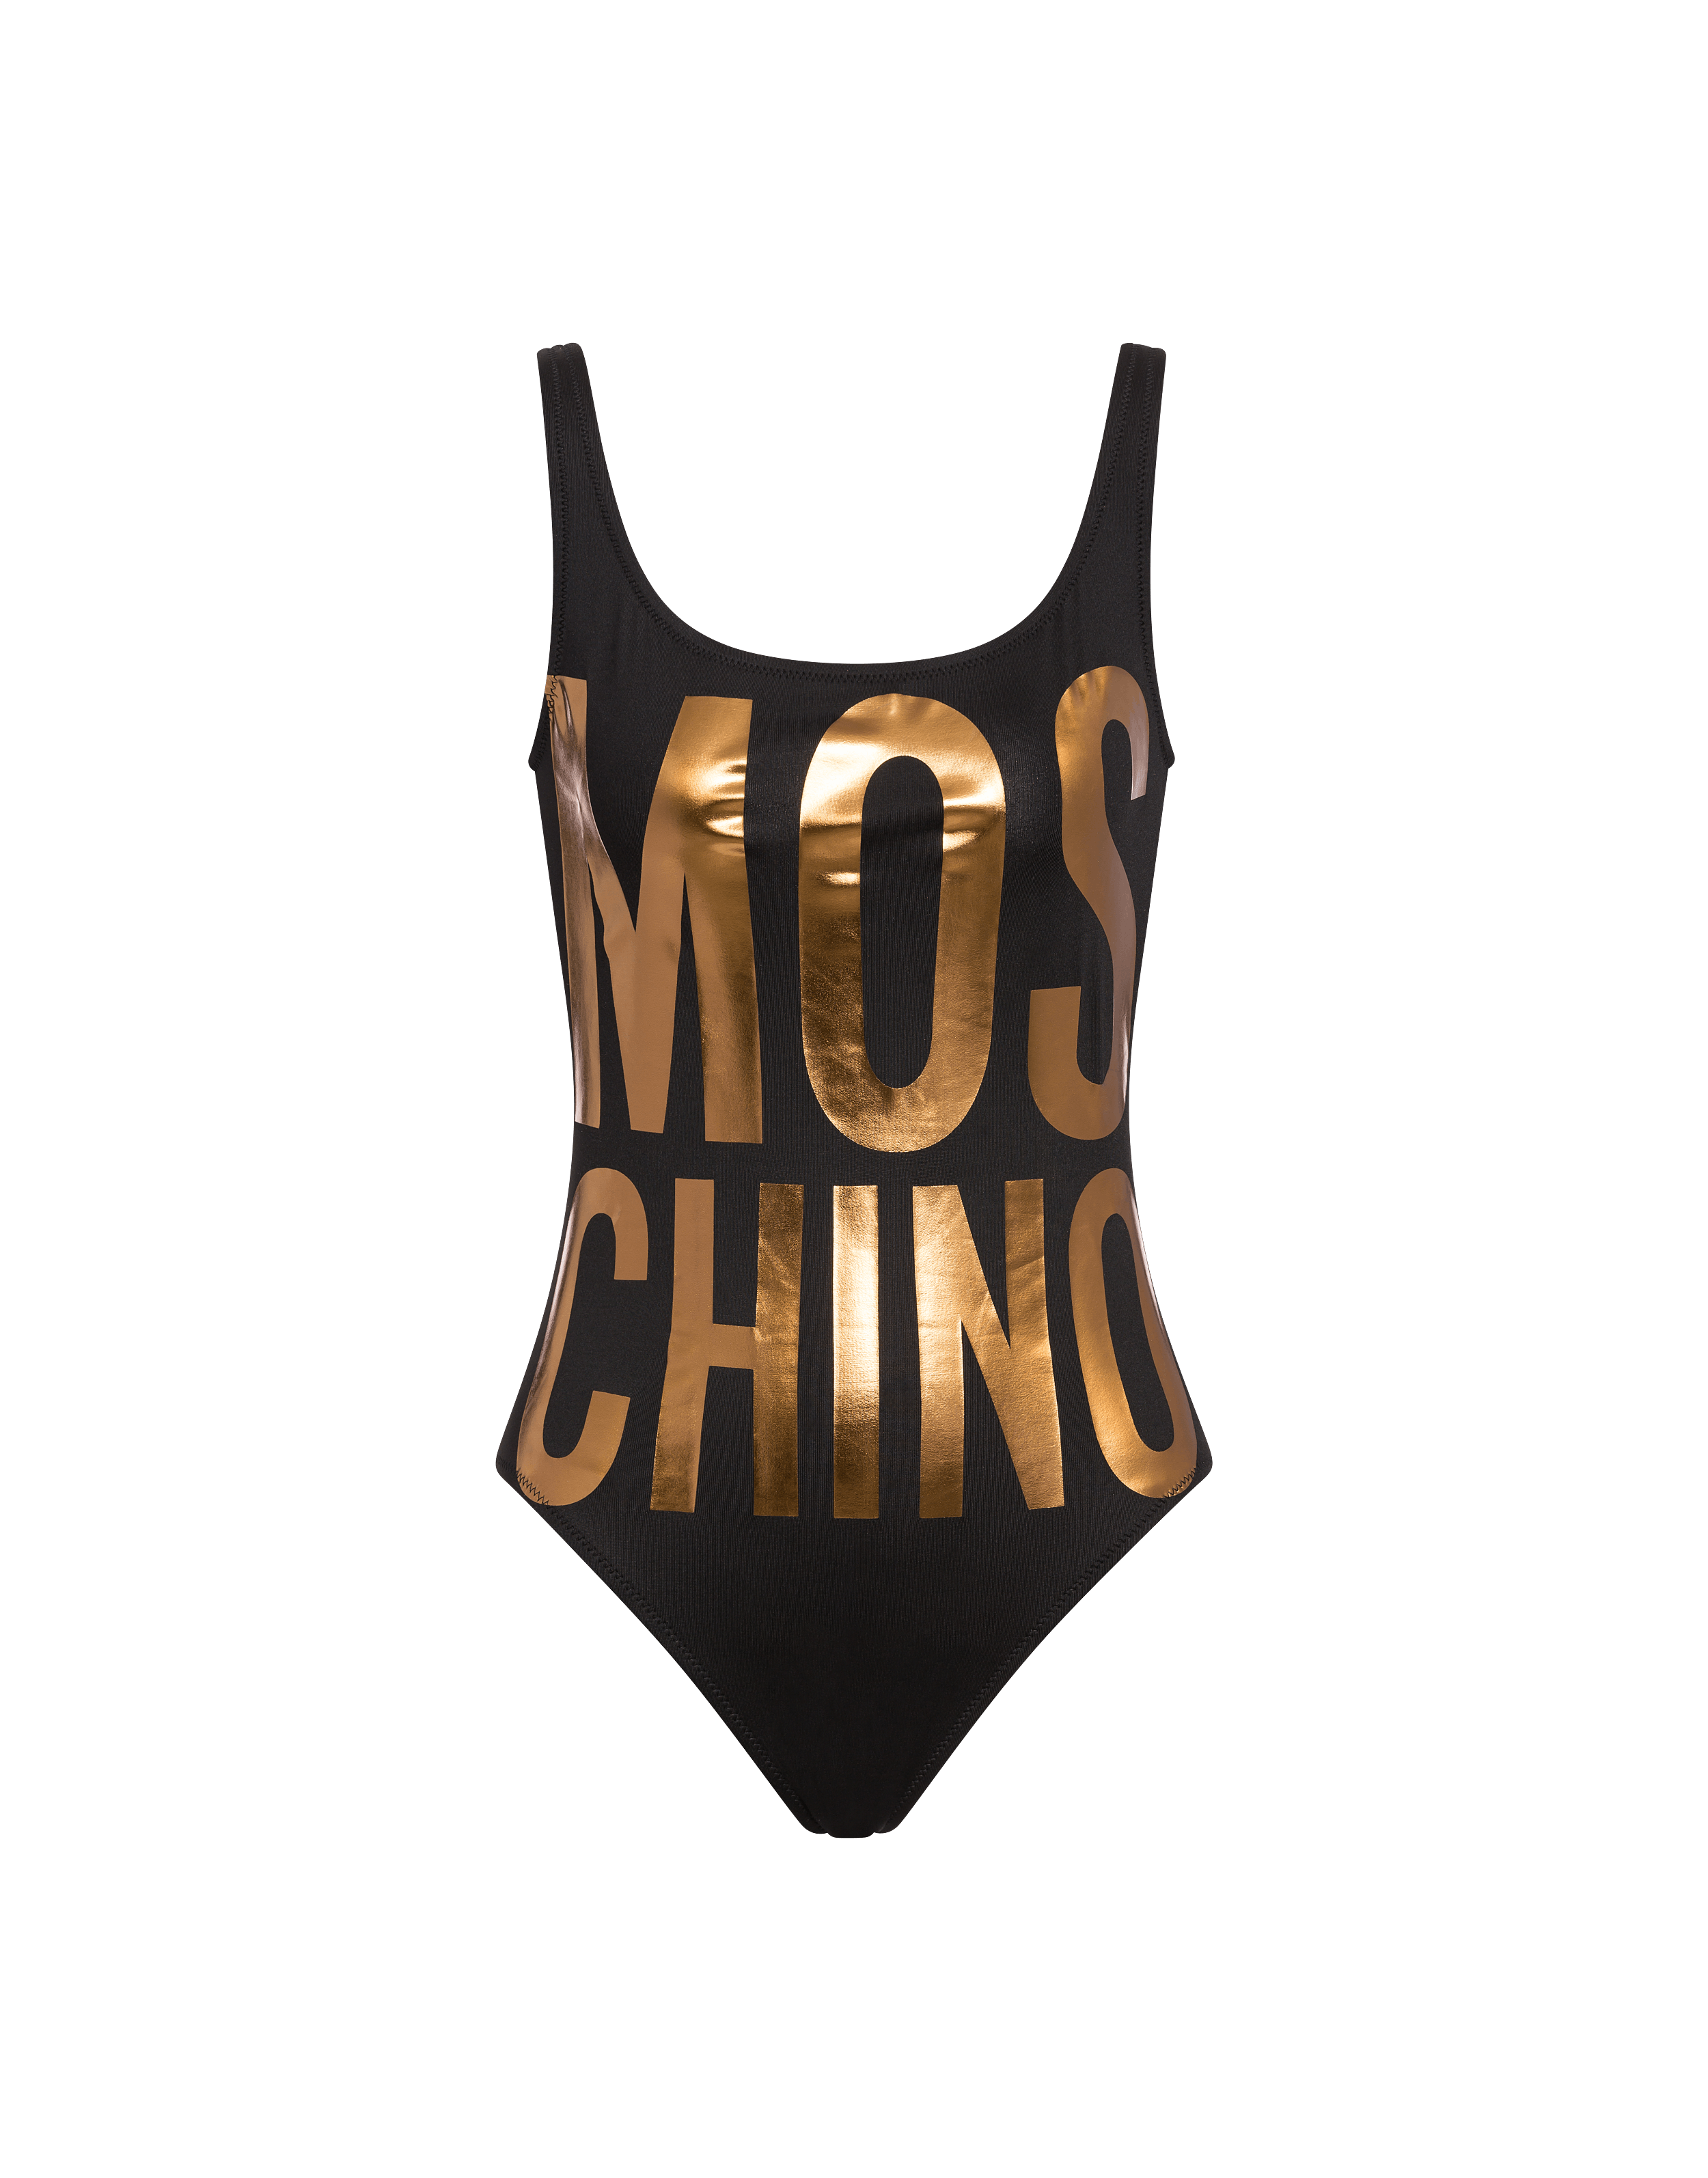 a0a8a0d57ea86b One-piece swimsuit with maxi laminated logo - Clothing - Women - Moschino